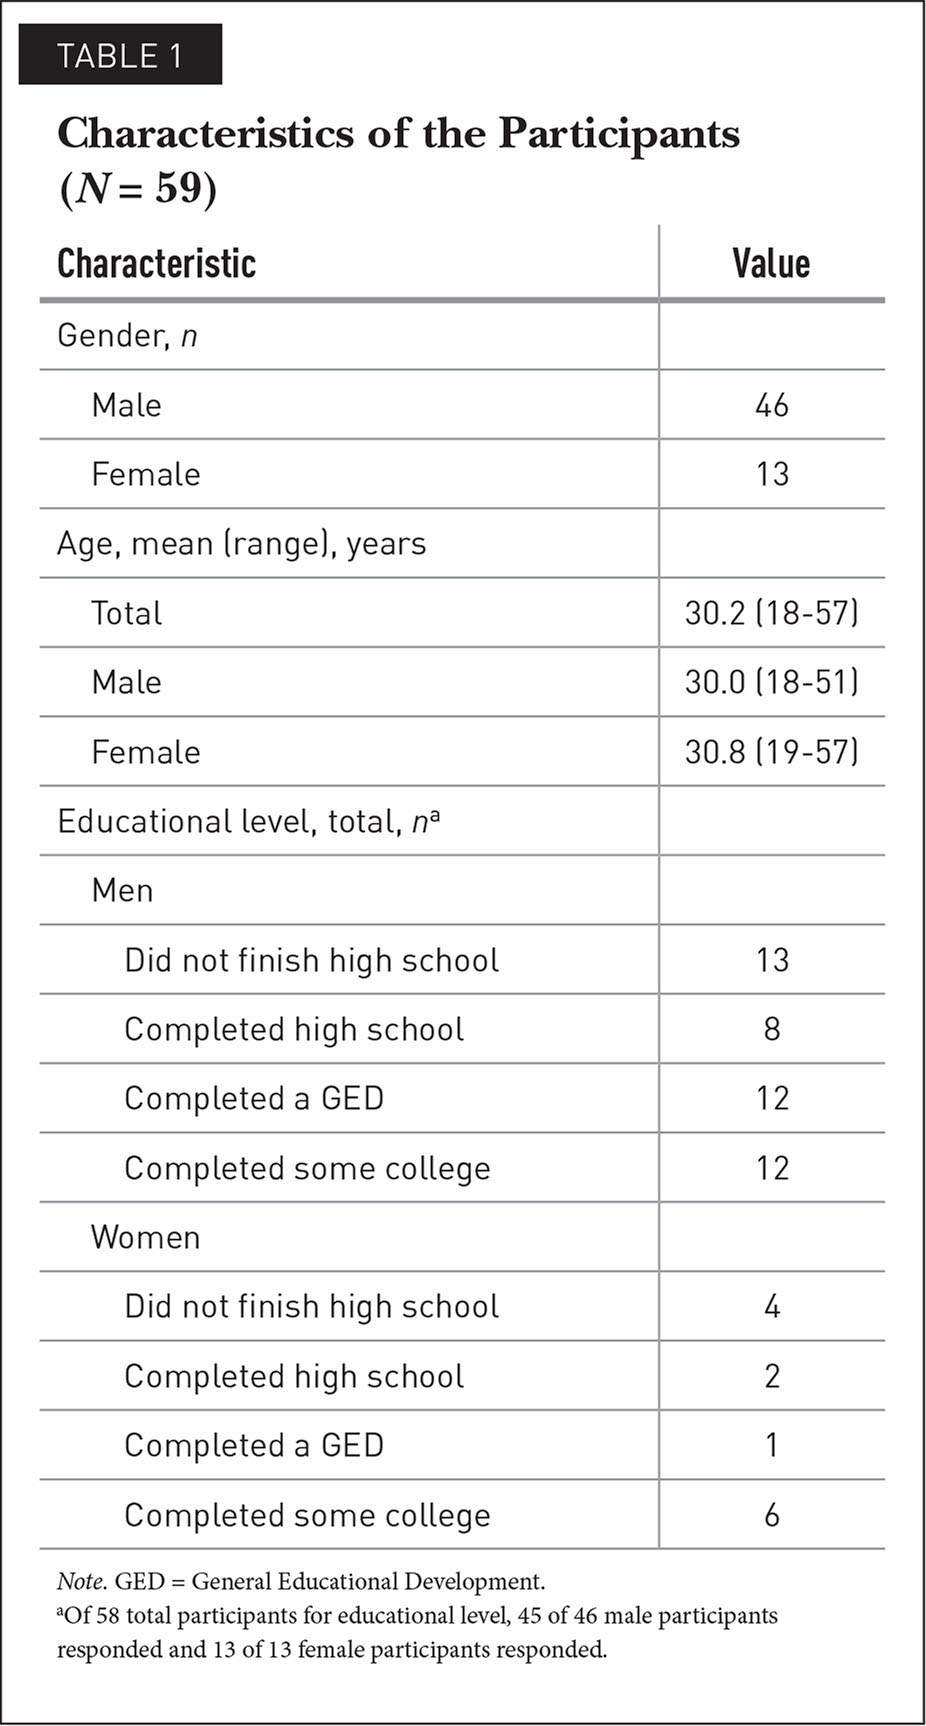 Characteristics of the Participants (N = 59)